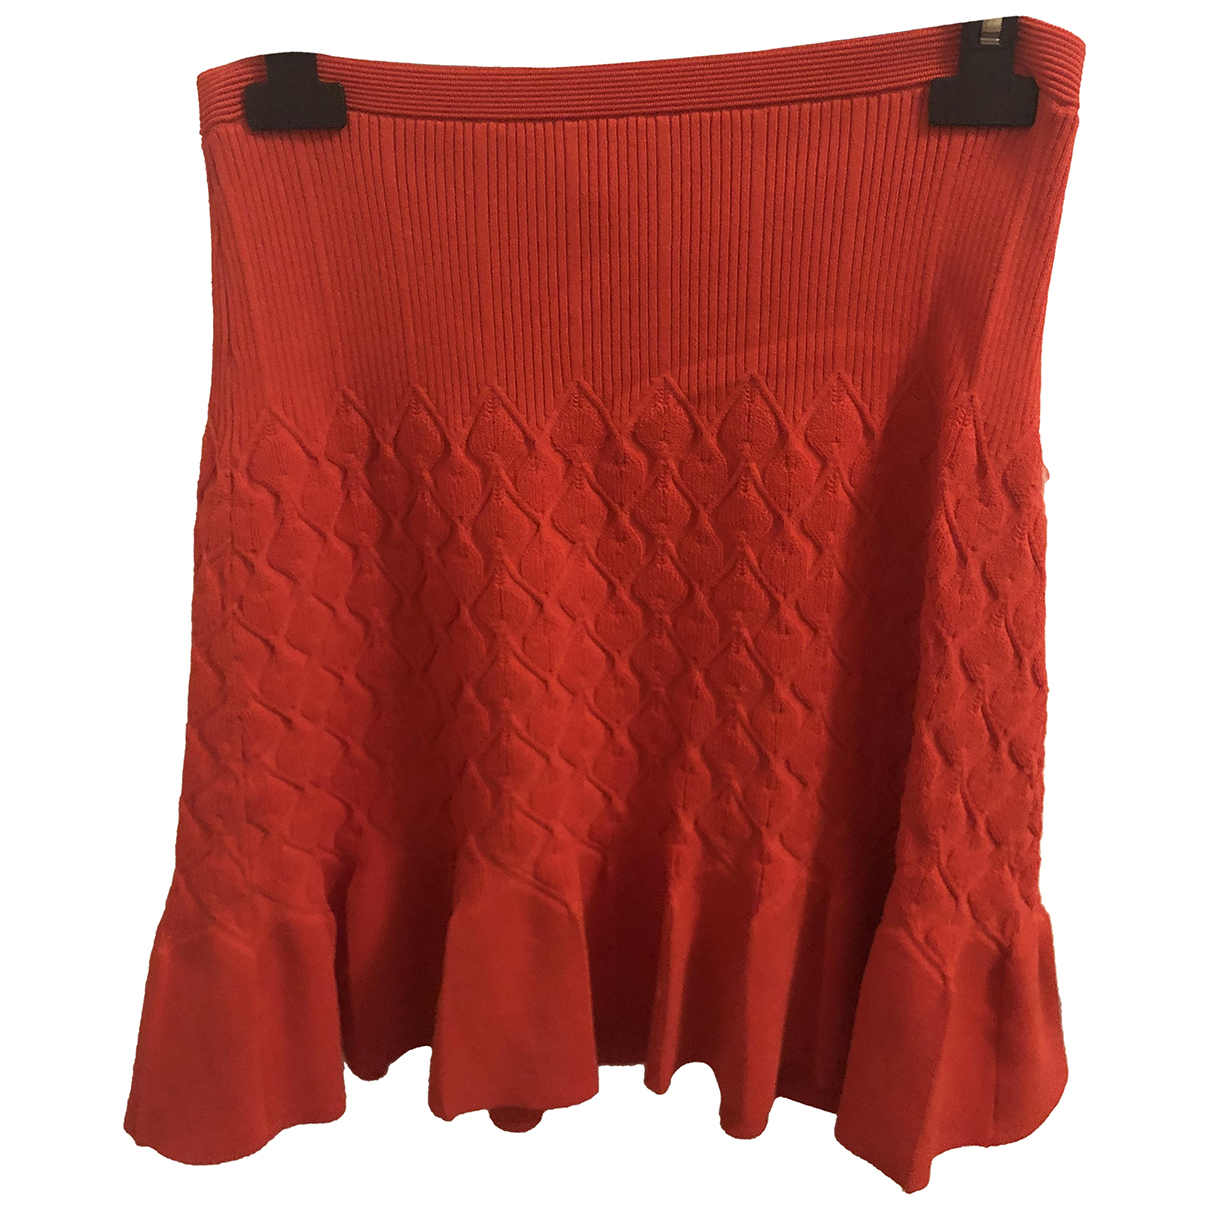 Sandro \N Red skirt for Women 2 0-5